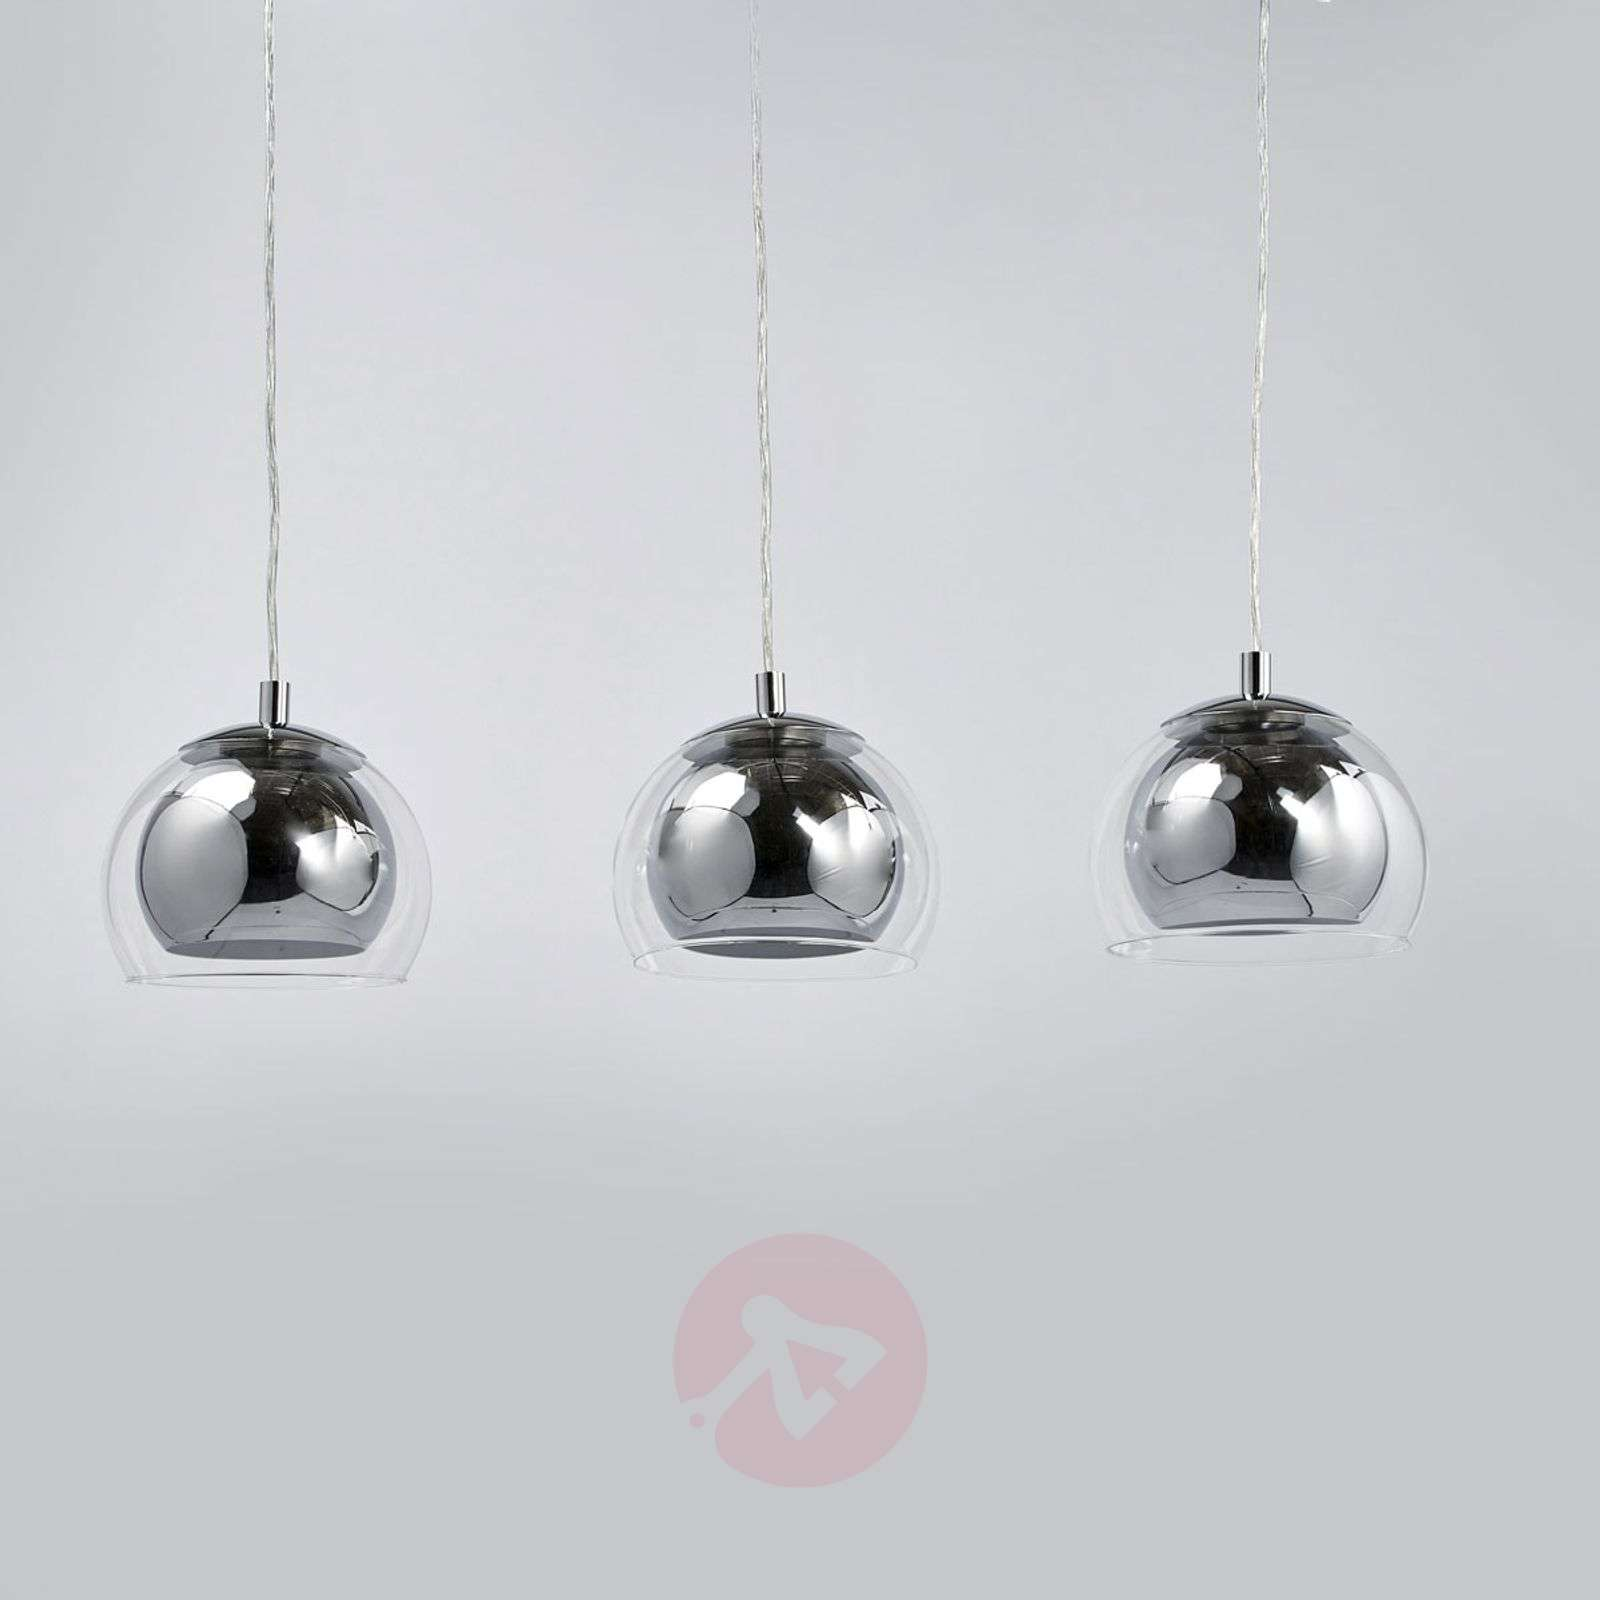 Suspension rocamar 3 lampes for Suspension trois lampes